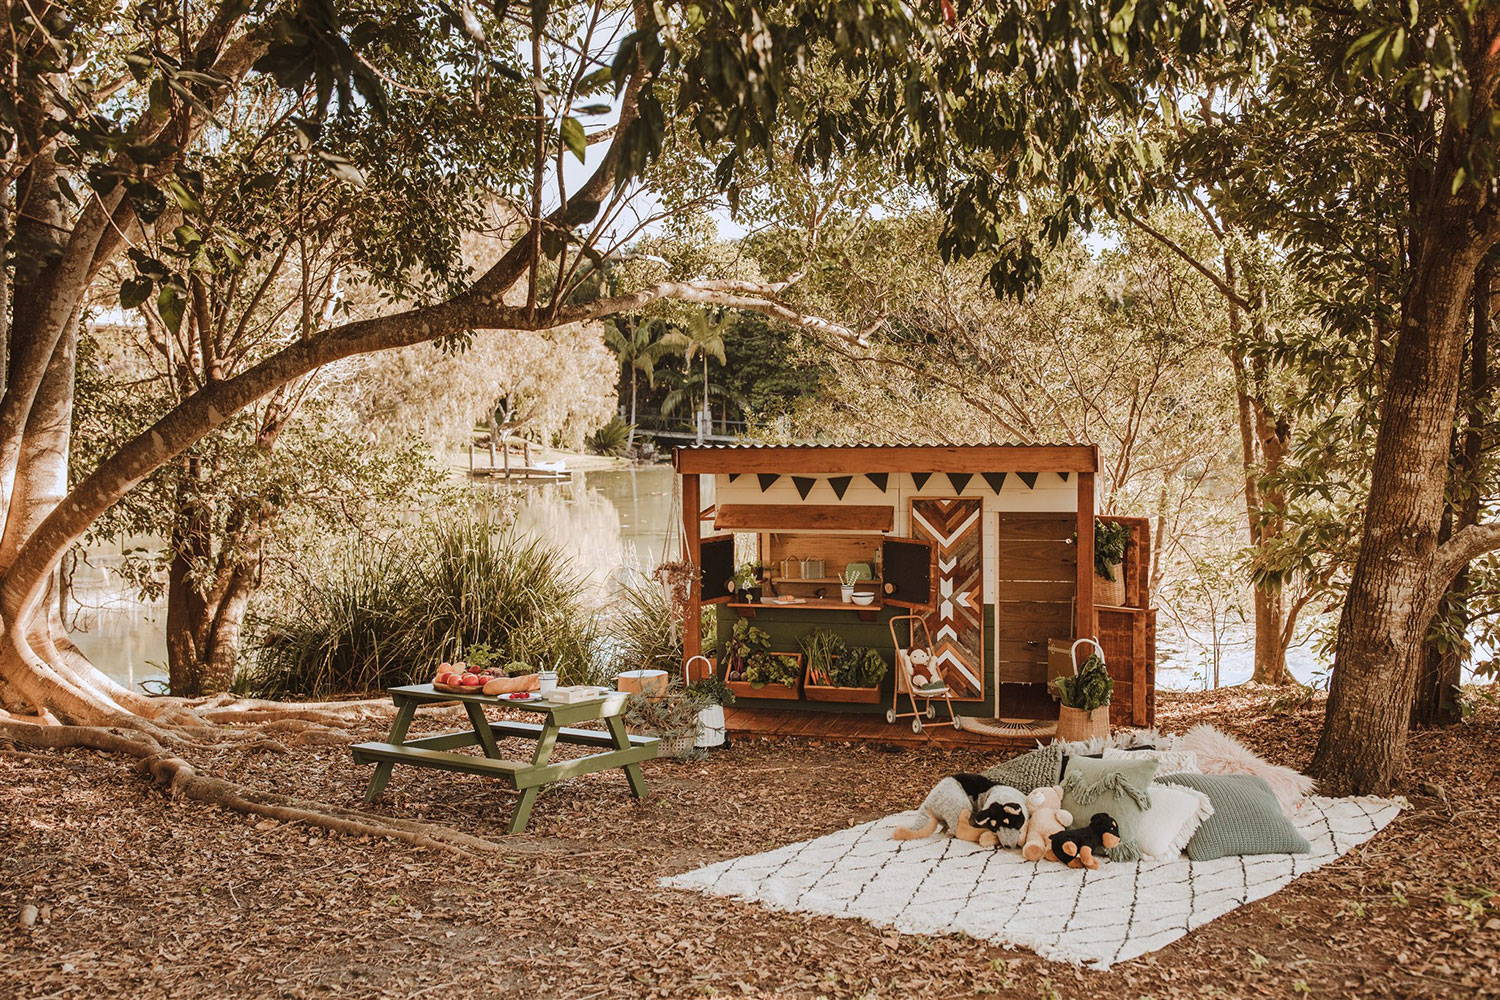 Timber cubby house with verandah and picnic table next to lake